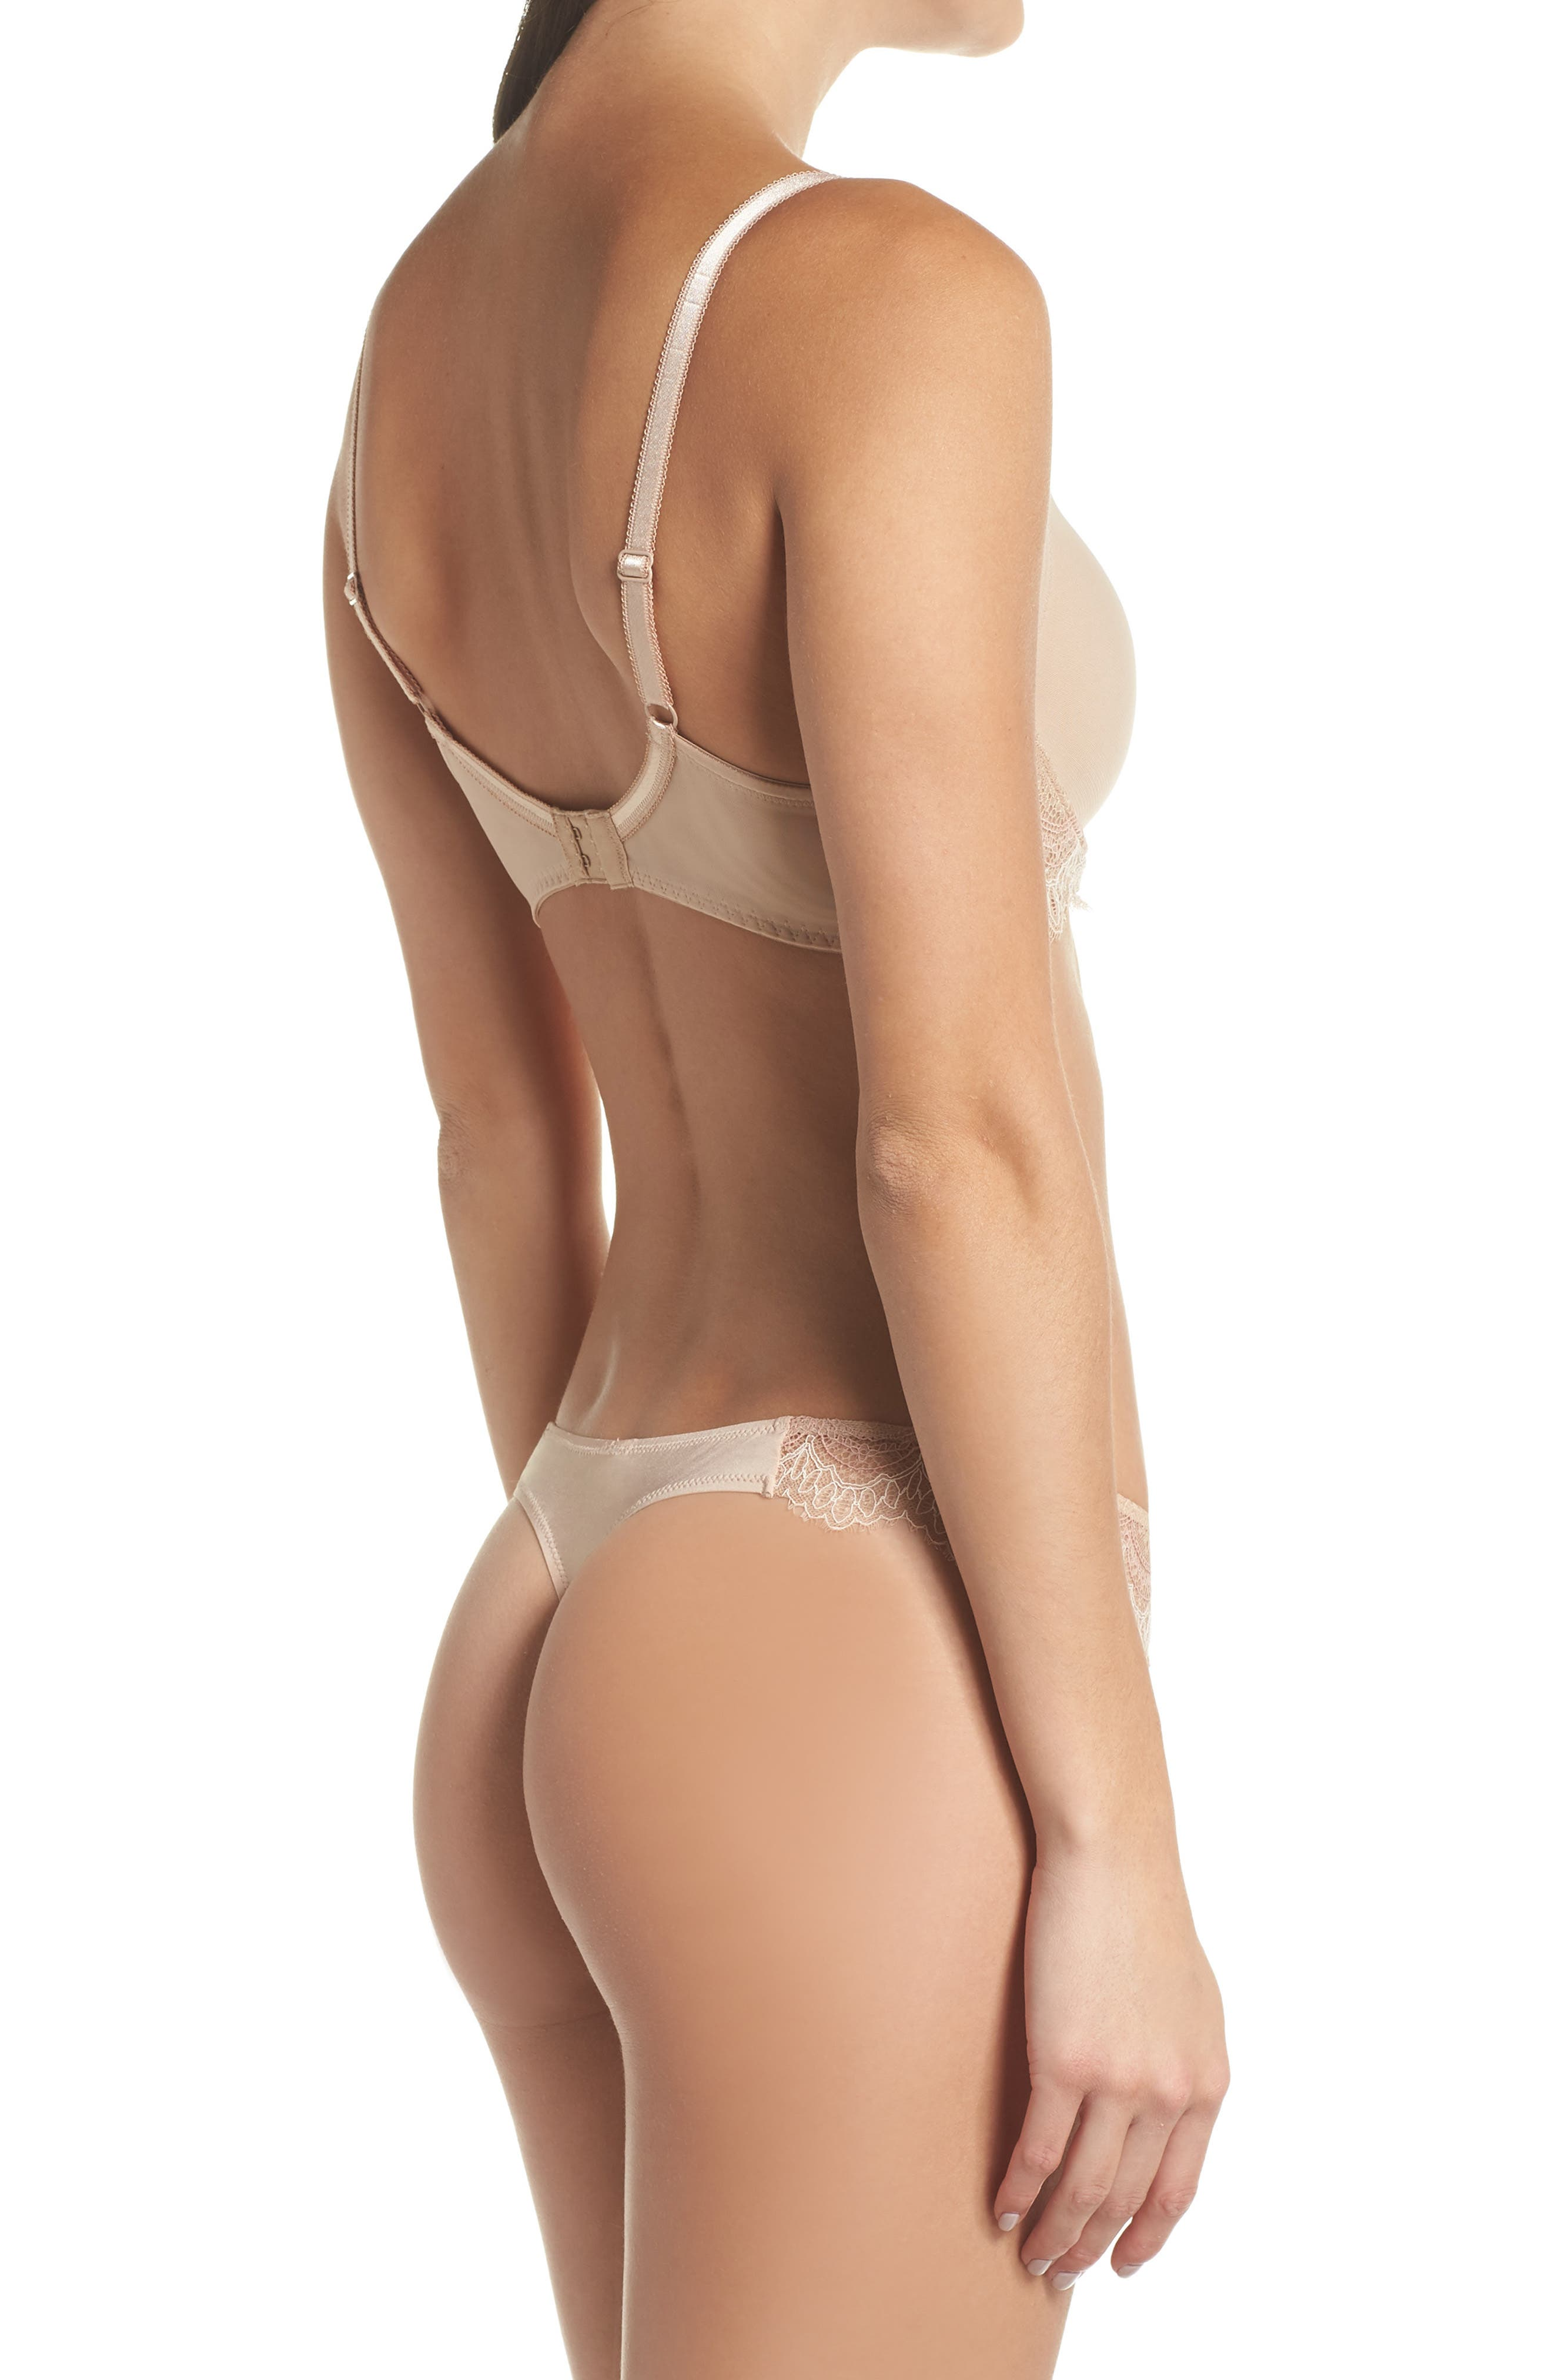 Wink Worthy Thong,                             Alternate thumbnail 8, color,                             210